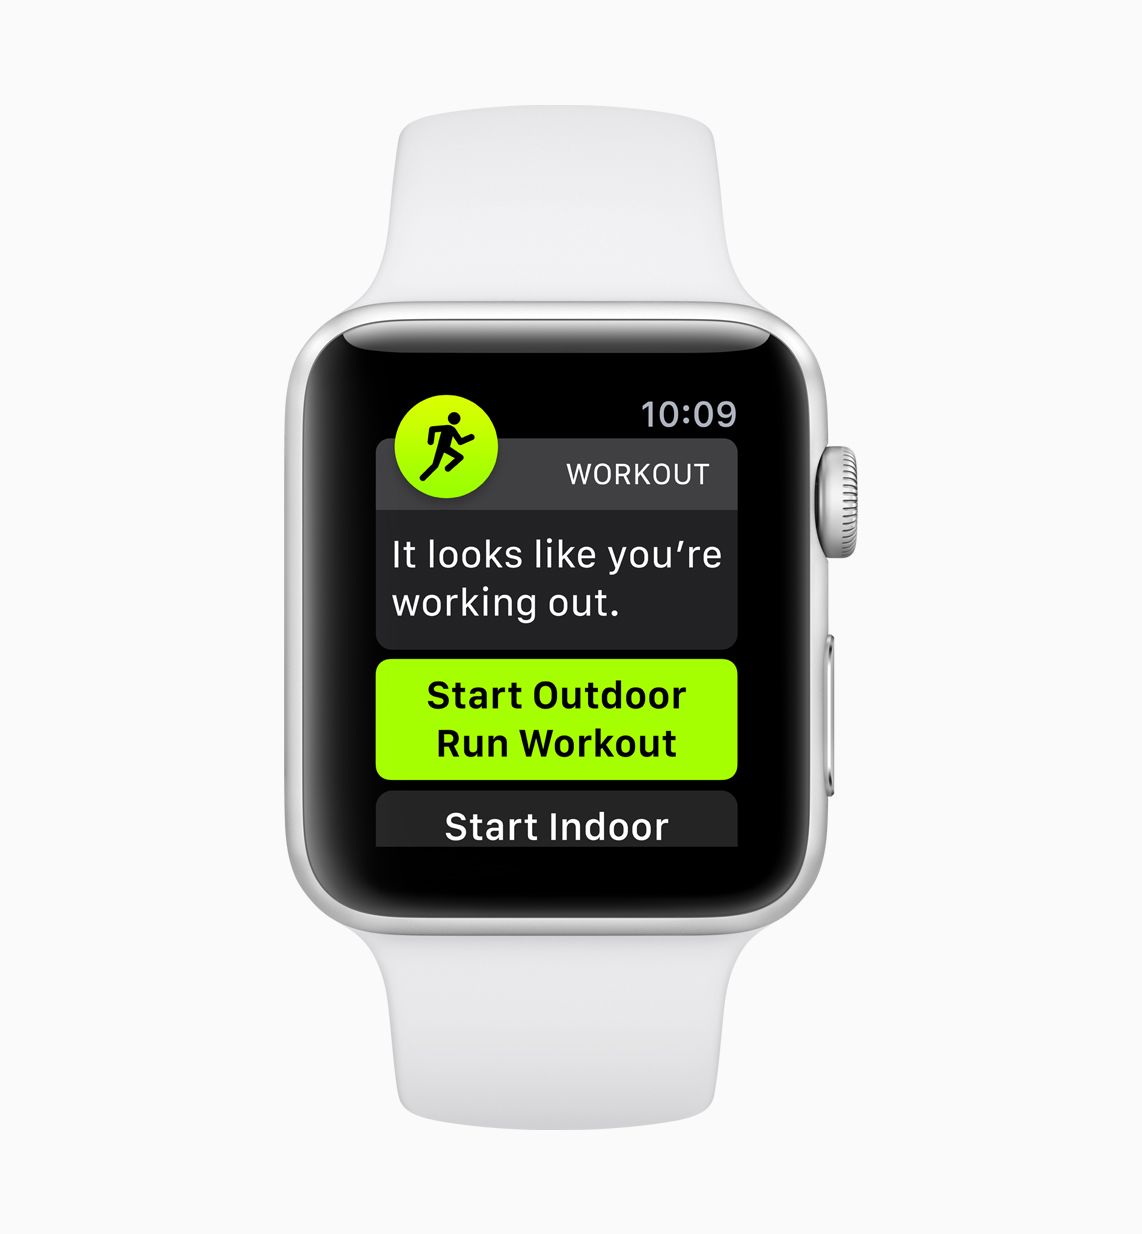 UI of the automatic workout detection on watchOS